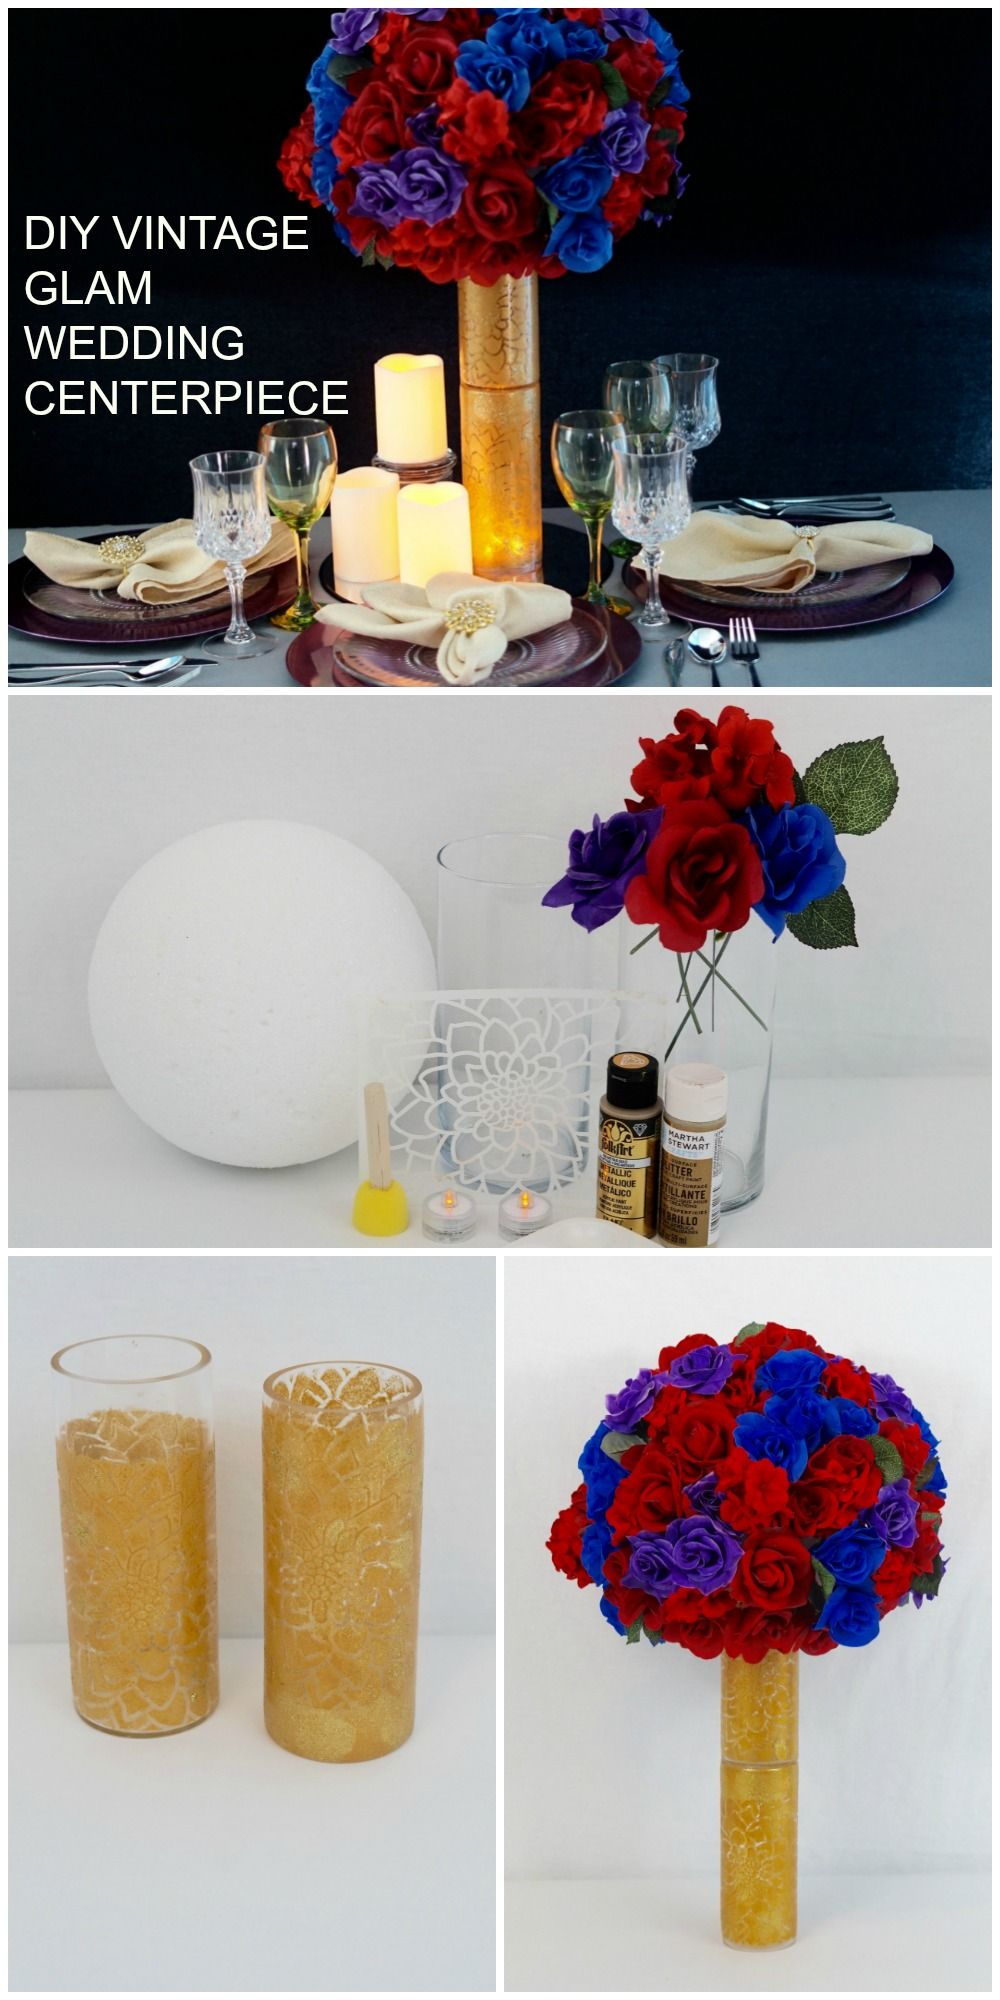 Easy to make DIY Vintage Glam Wedding Centerpieces on a budget ...